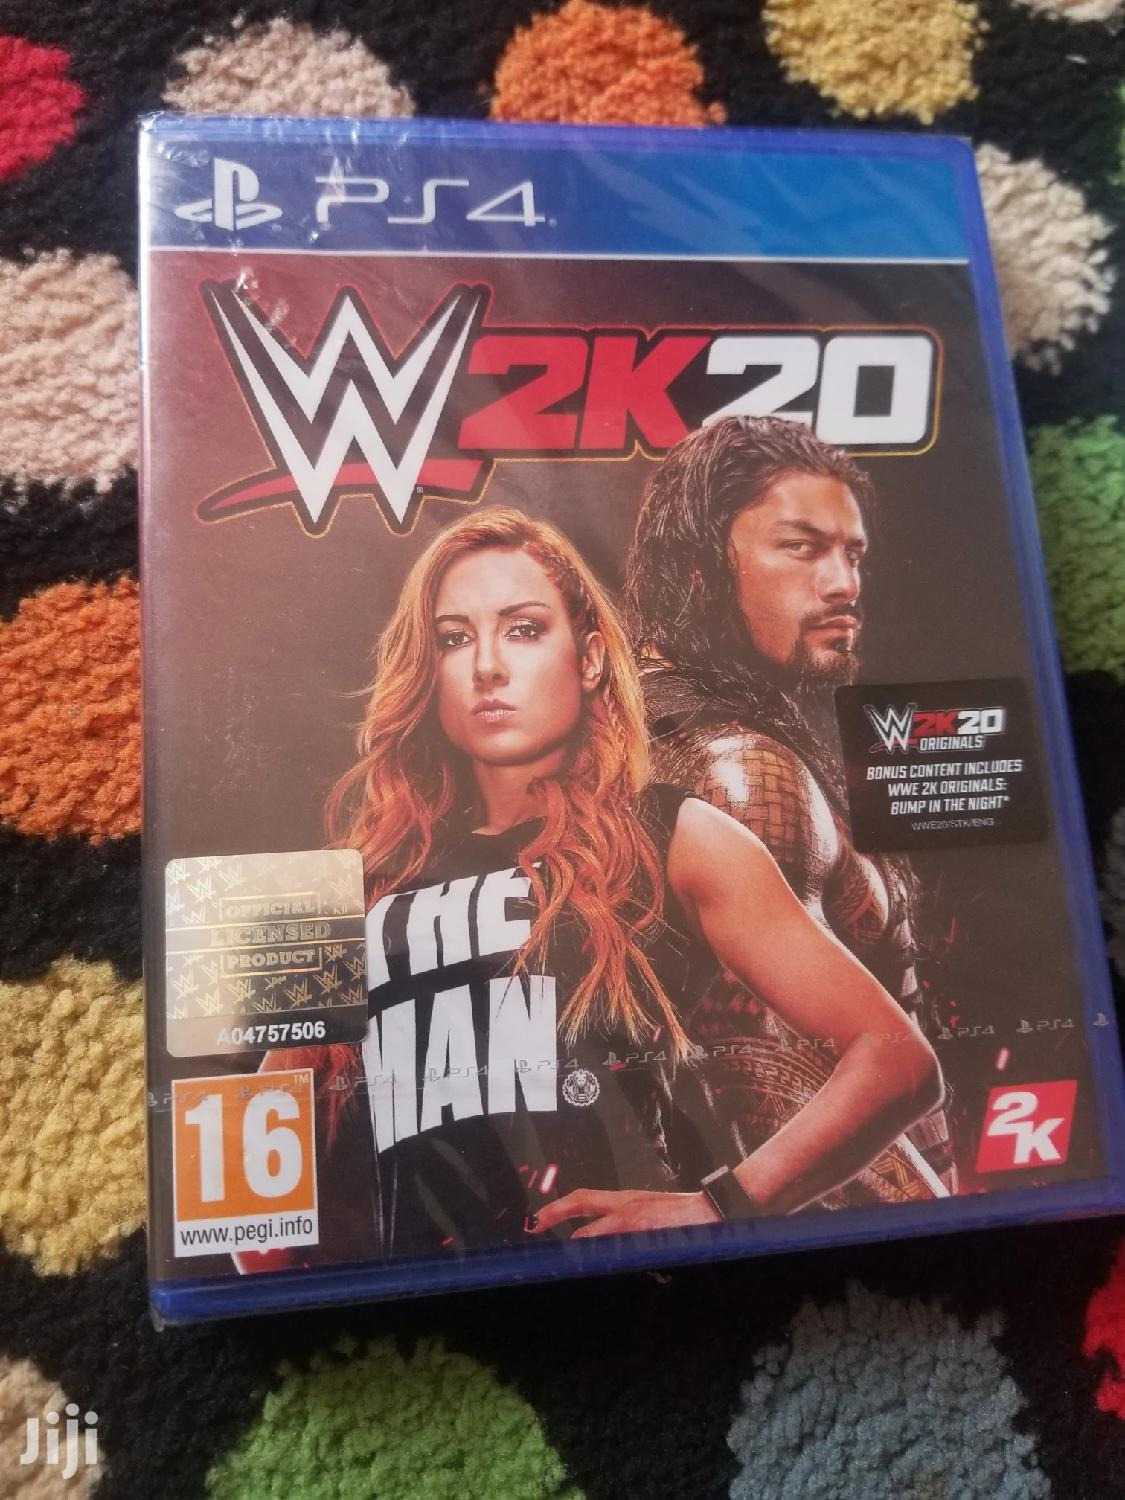 Archive: W2k20 Game